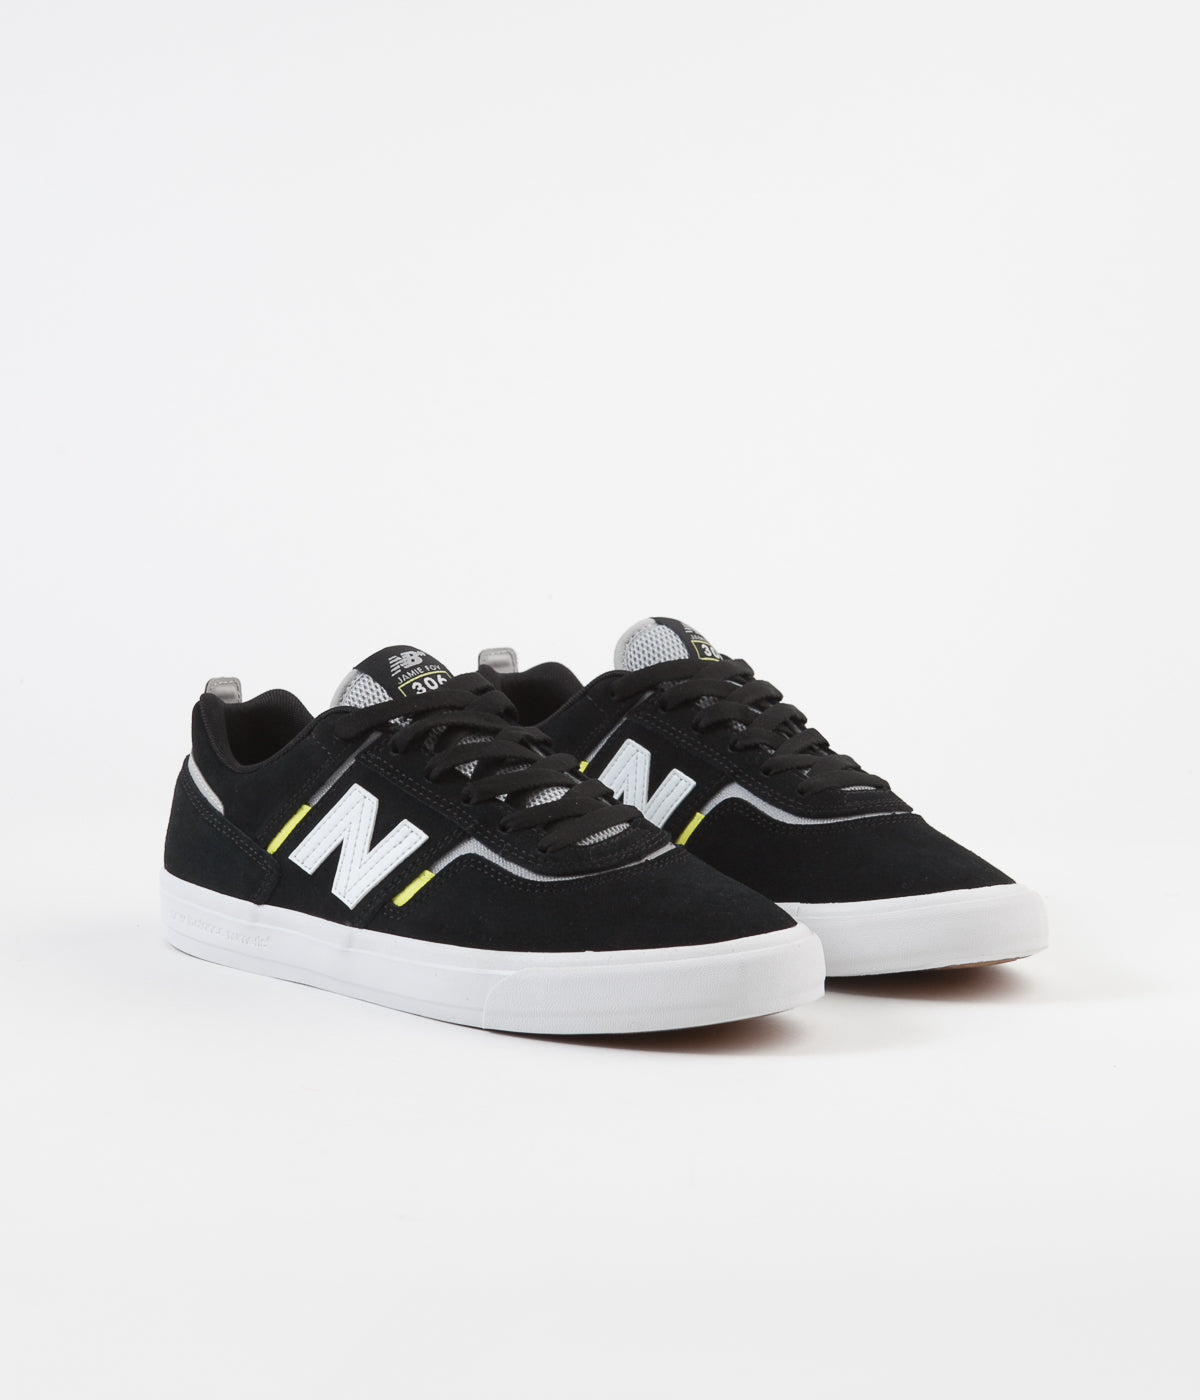 New Balance Numeric 306 Jamie Foy Shoes - Black / White